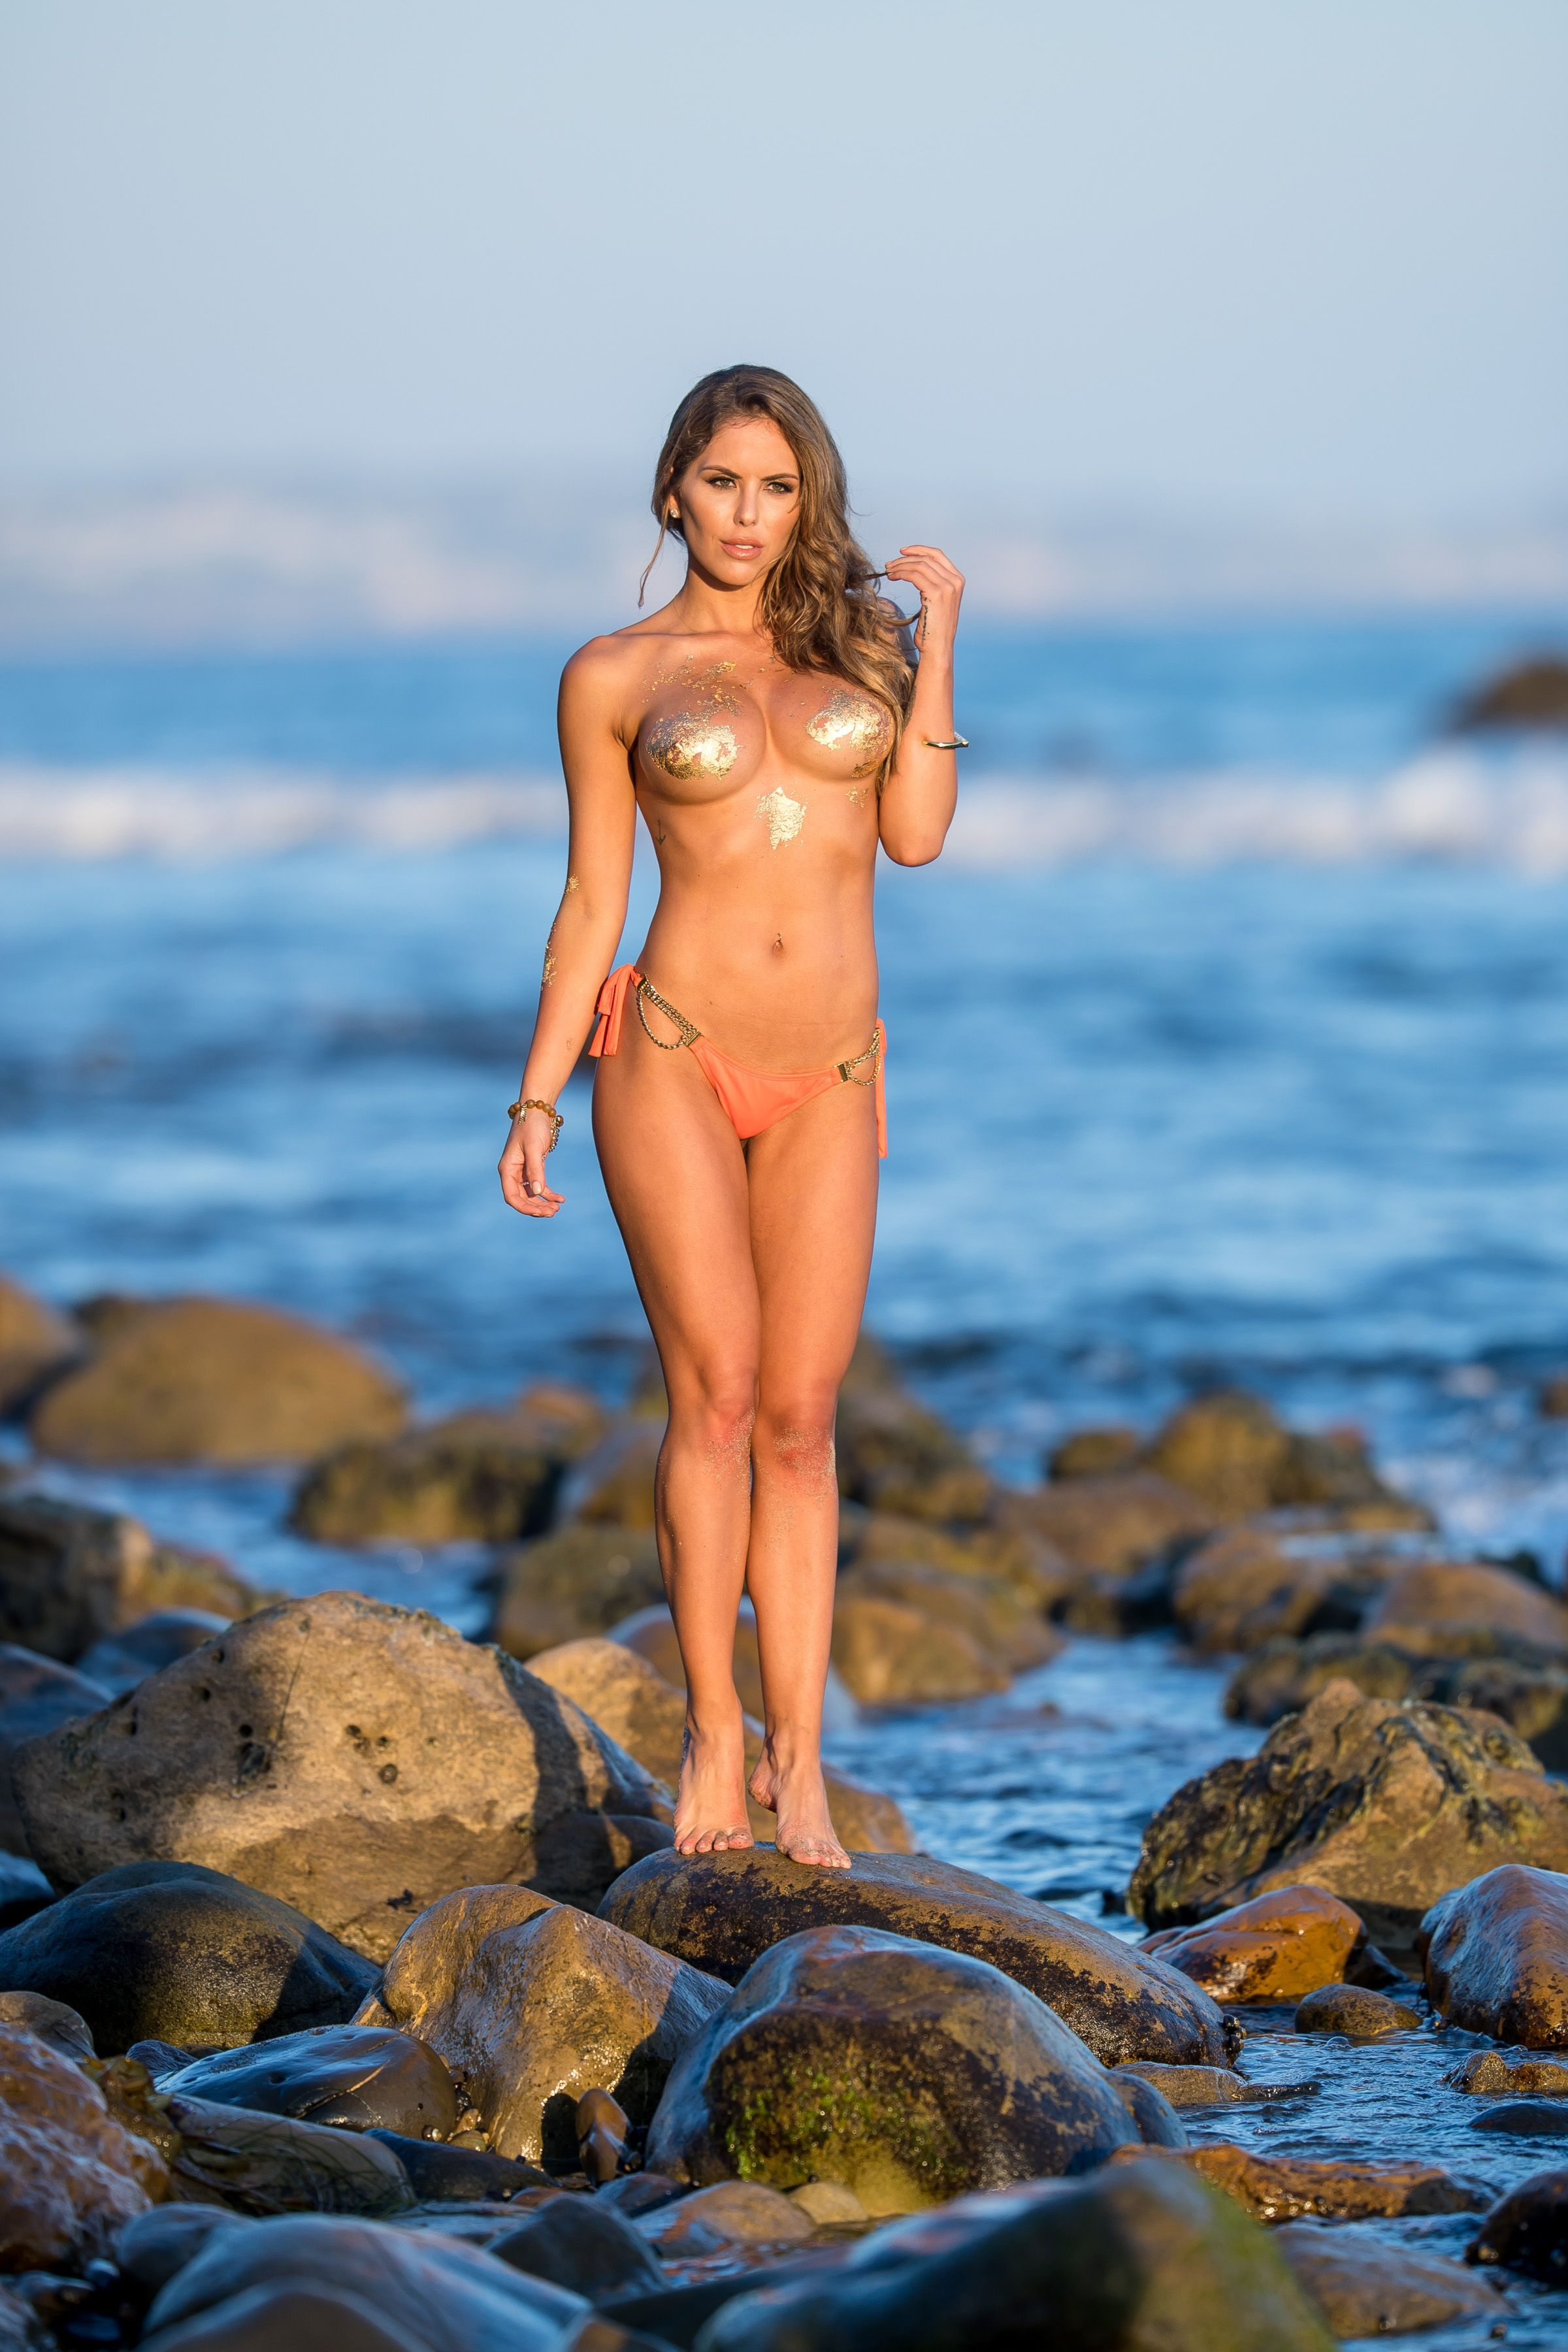 Brittney-Palmer-Sexy-Topless-33-thefappeningblog.com_.jpg